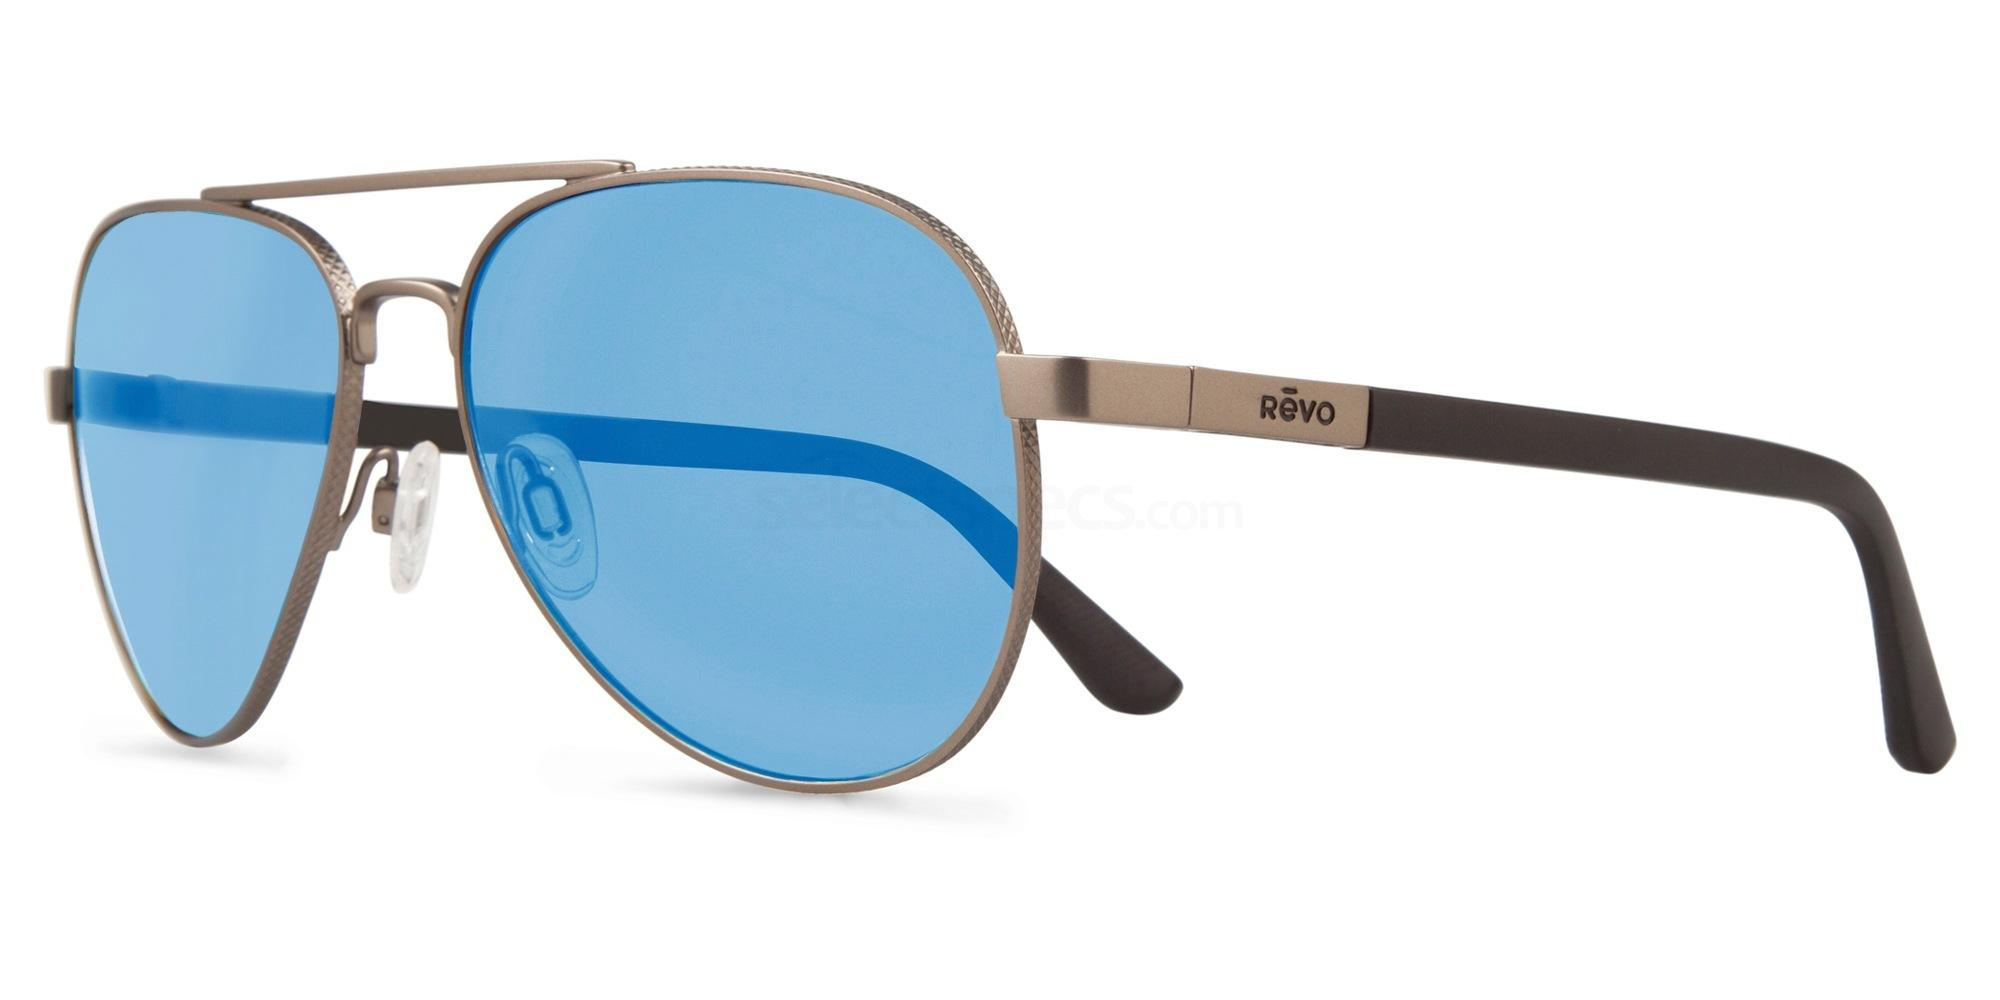 00BL Raconteur - RE1011 Sunglasses, Revo